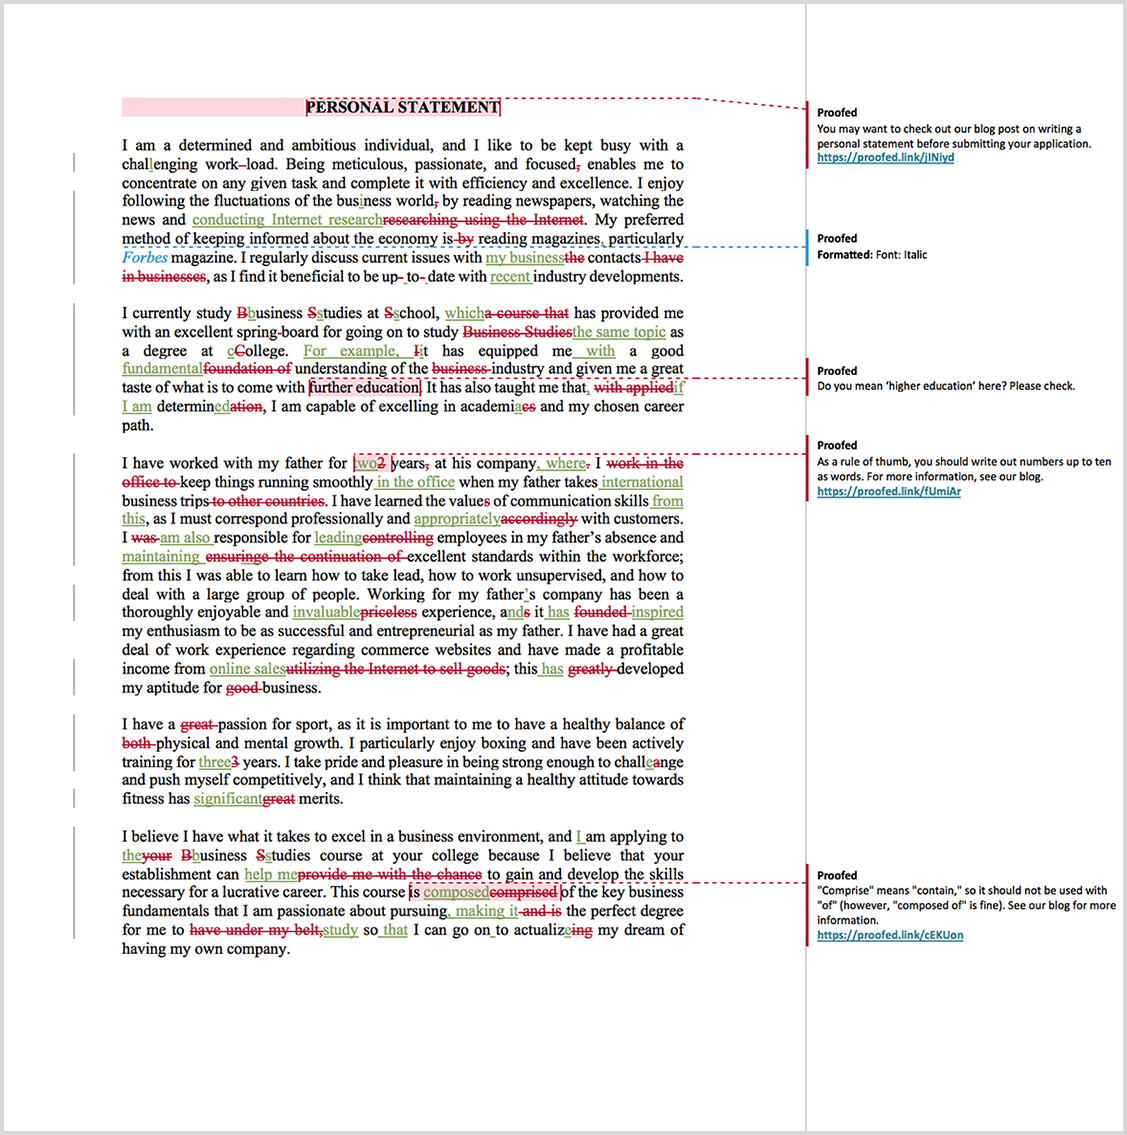 Personal statement proofreading example after editing